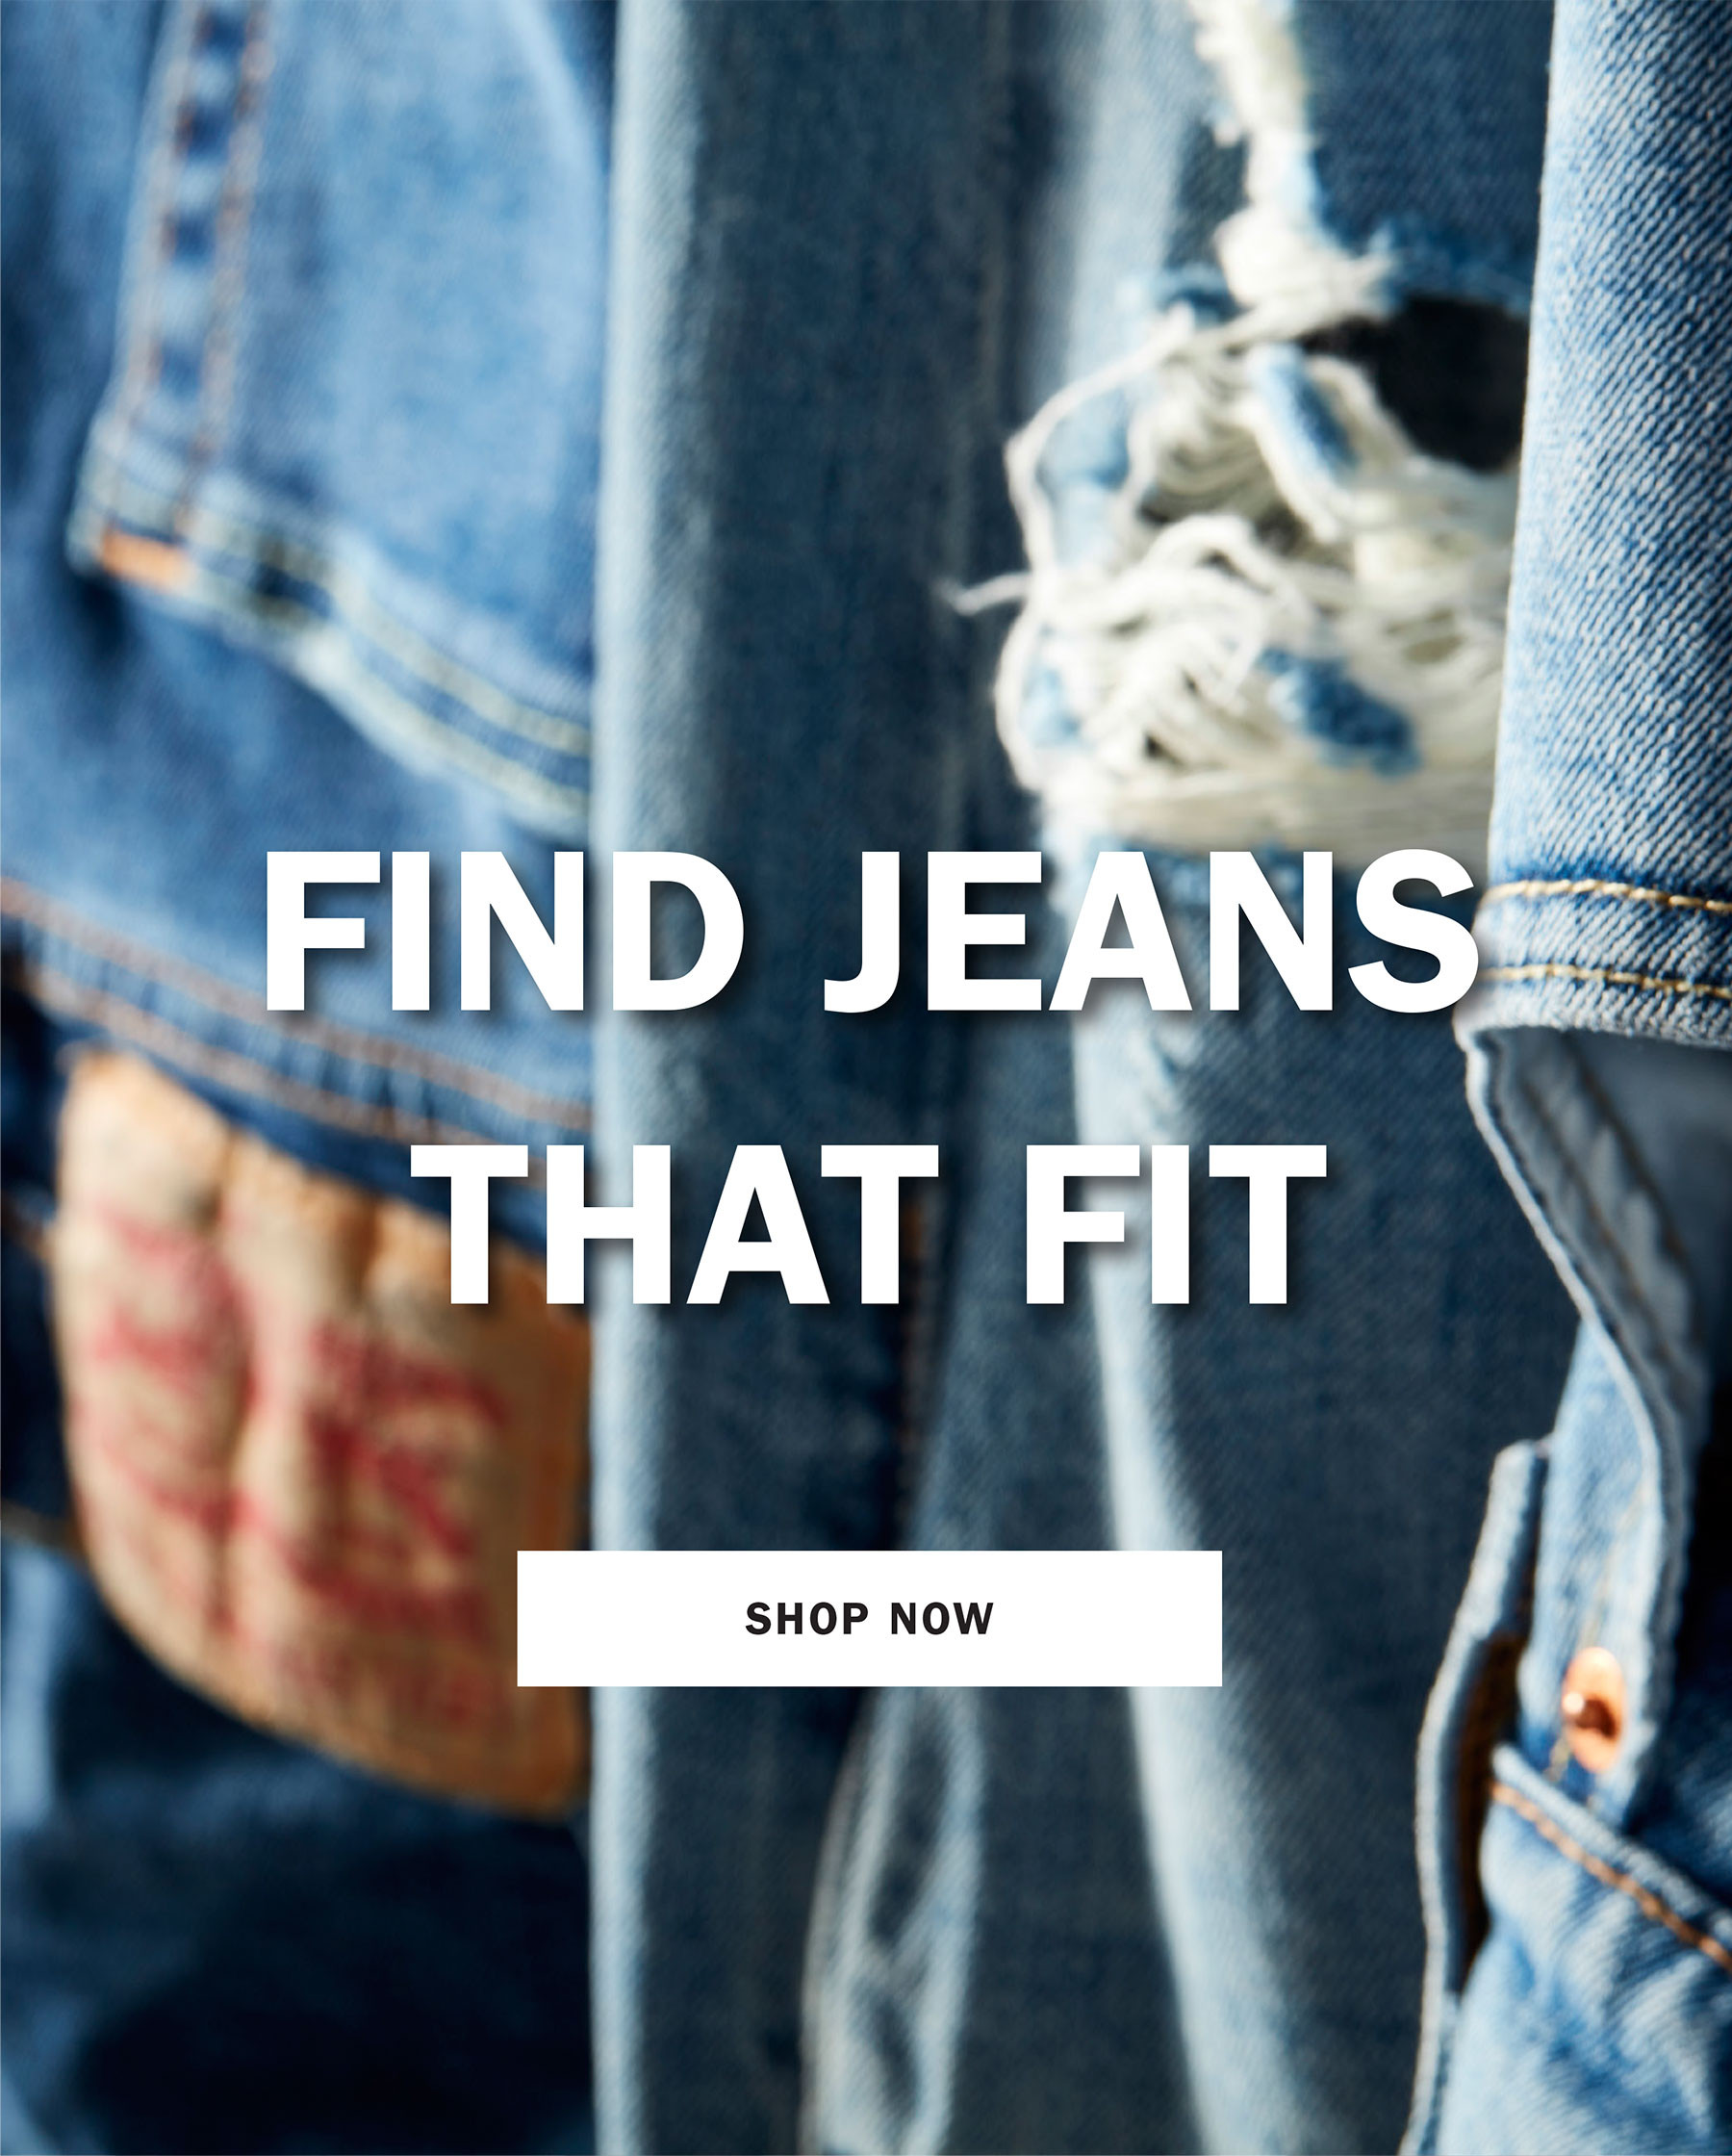 FIND JEANS THAT FIT   SHOP NOW